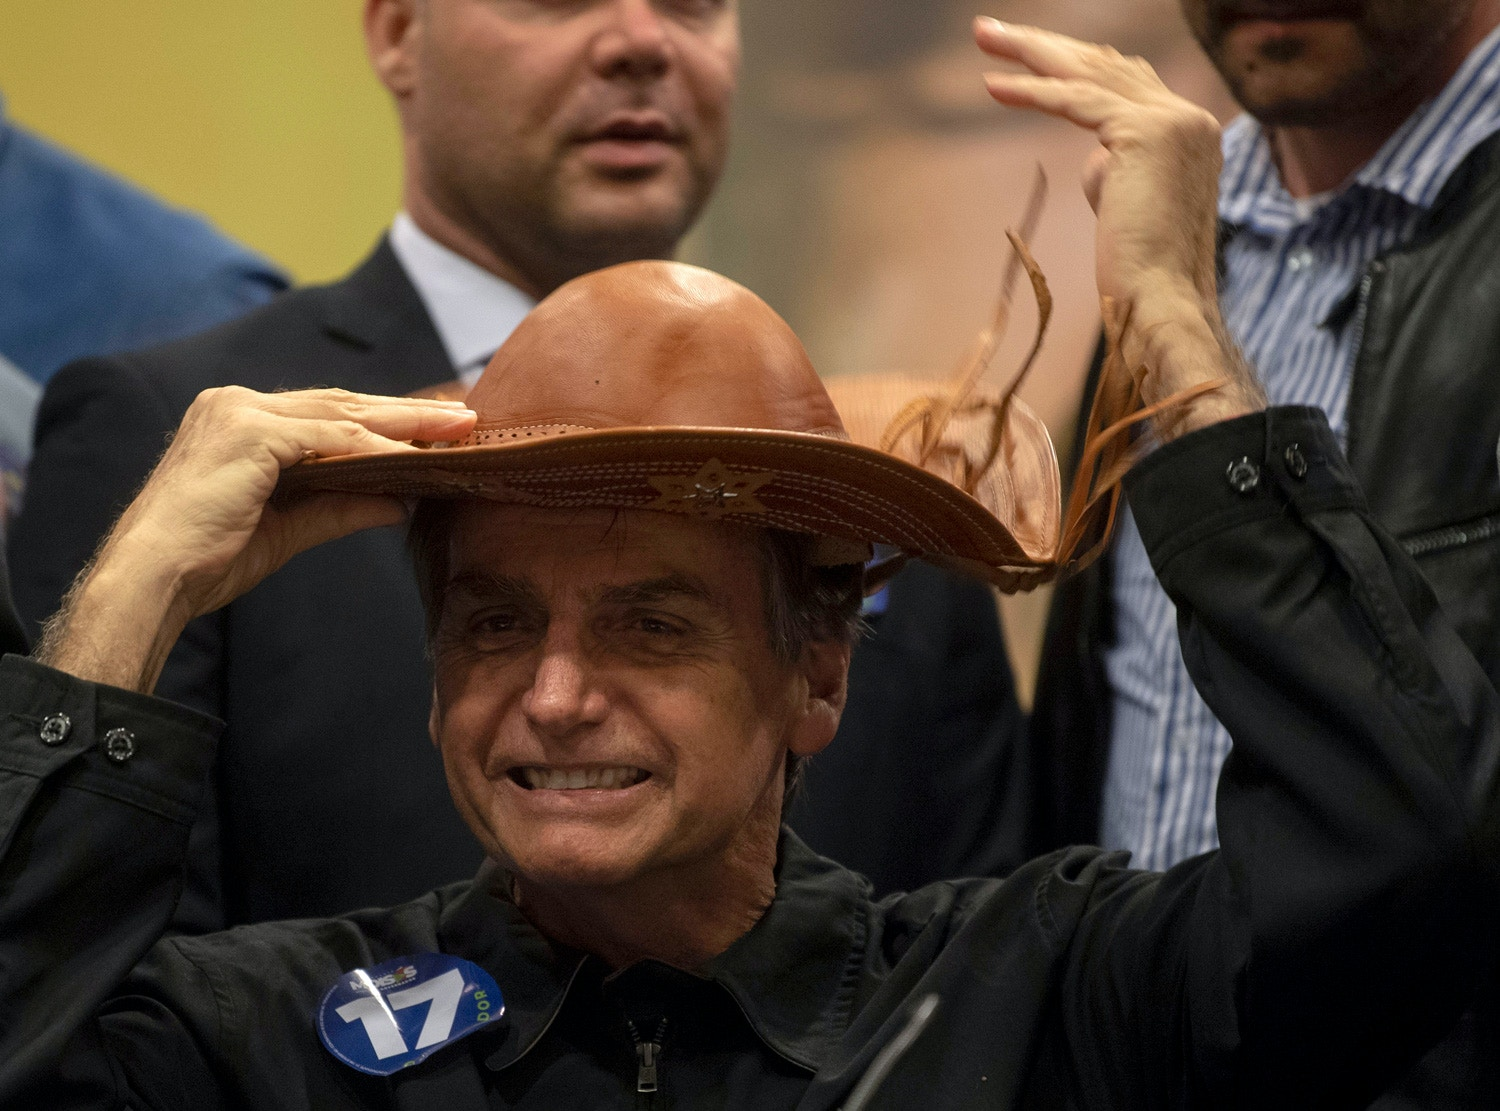 Brazil's right-wing presidential candidate for the Social Liberal Party (PSL) Jair Bolsonaro gestures during a press conference in Rio de Janeiro, Brazil on October 11, 2018. - The far-right frontrunner to be Brazil's next president, Jair Bolsonaro, stumbled Wednesday by spooking previously supportive investors, while a spate of violent incidents pointed to deep polarization caused by the election race. (Photo by Mauro Pimentel / AFP)        (Photo credit should read MAURO PIMENTEL/AFP/Getty Images)